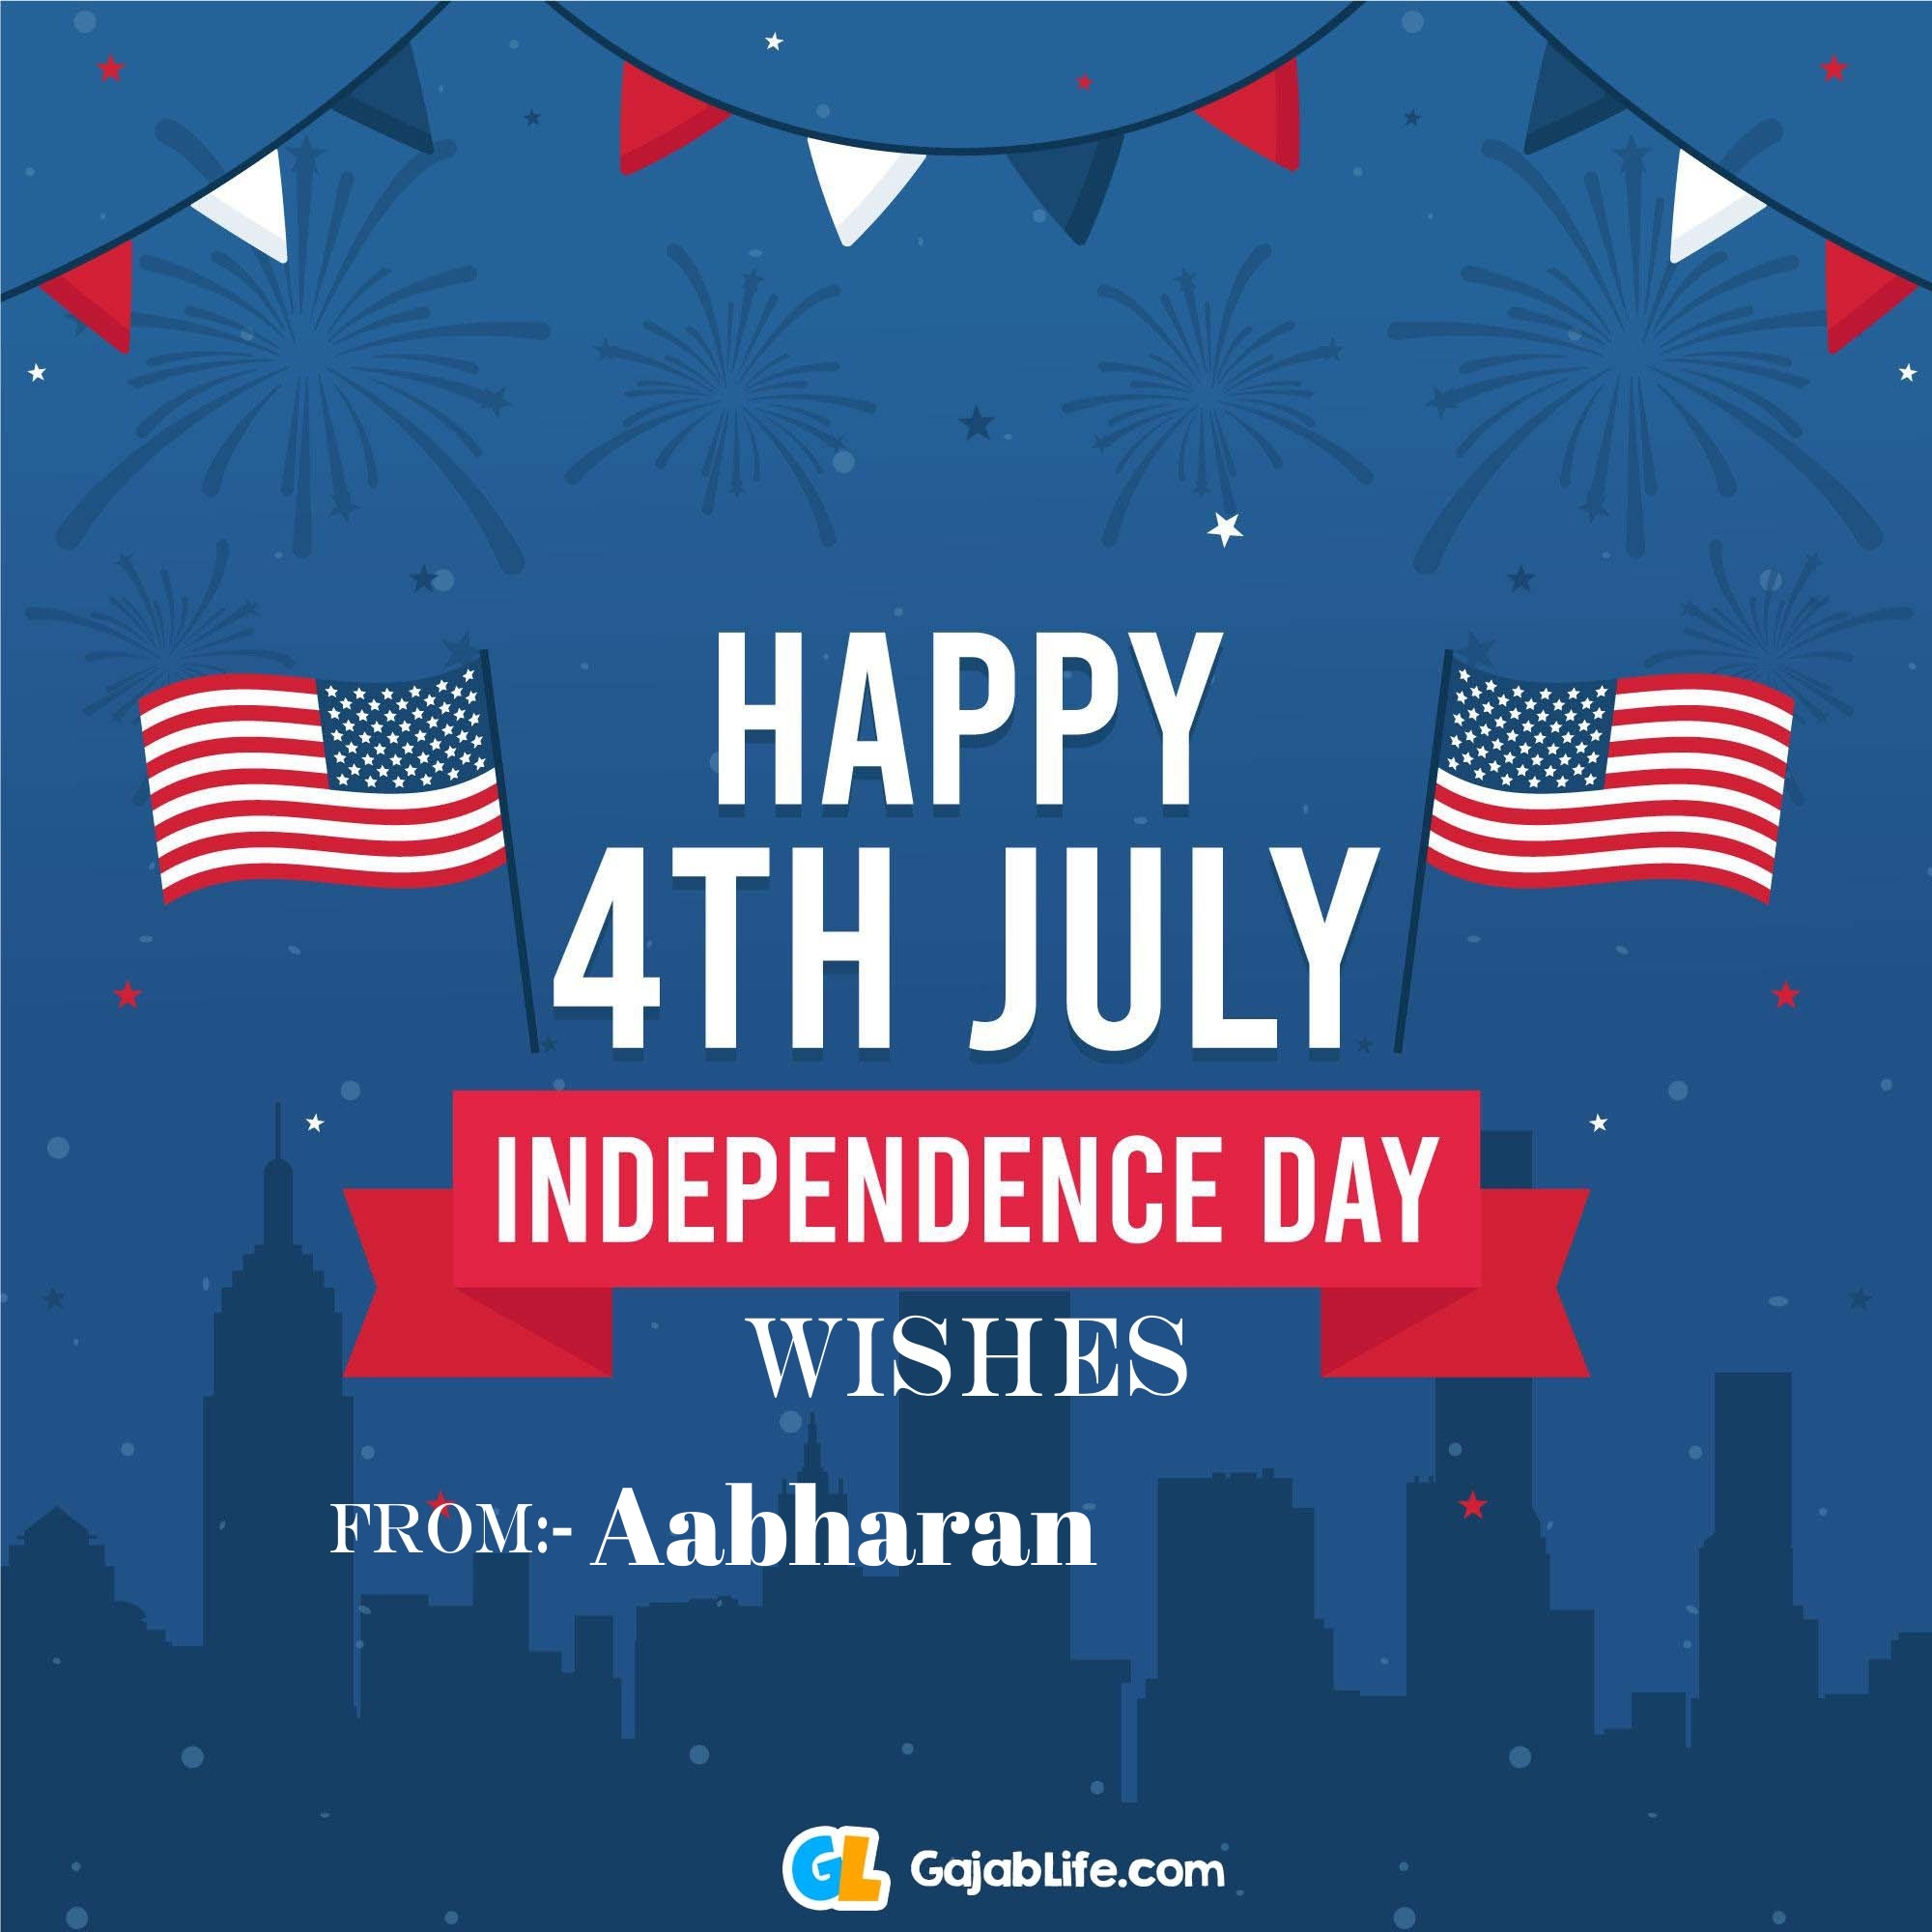 Aabharan happy independence day united states of america images